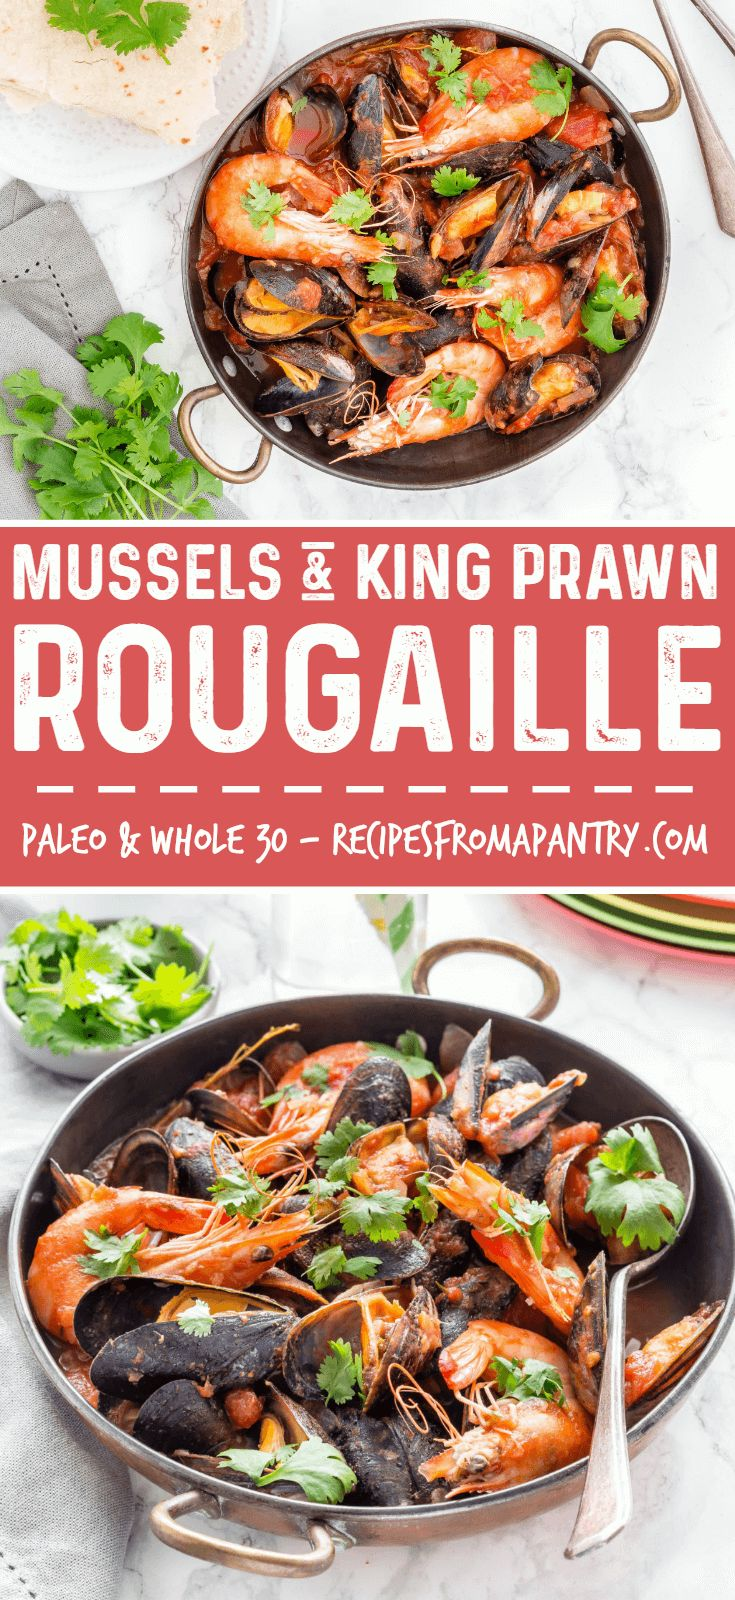 This Prawn and Mussels Rougaille is one of the classic Mauritian Recipes with richly flavoured tomato sauce that combines Creole cuisine flavours like onions, thyme, garlic and chillies. Gluten-free, Paleo, Whole 30 diet friendly. #rougaille #mauritianrecipes #rougailsaucisse #recetterougailtomate #mauritianfishrougaille via @recipespantry